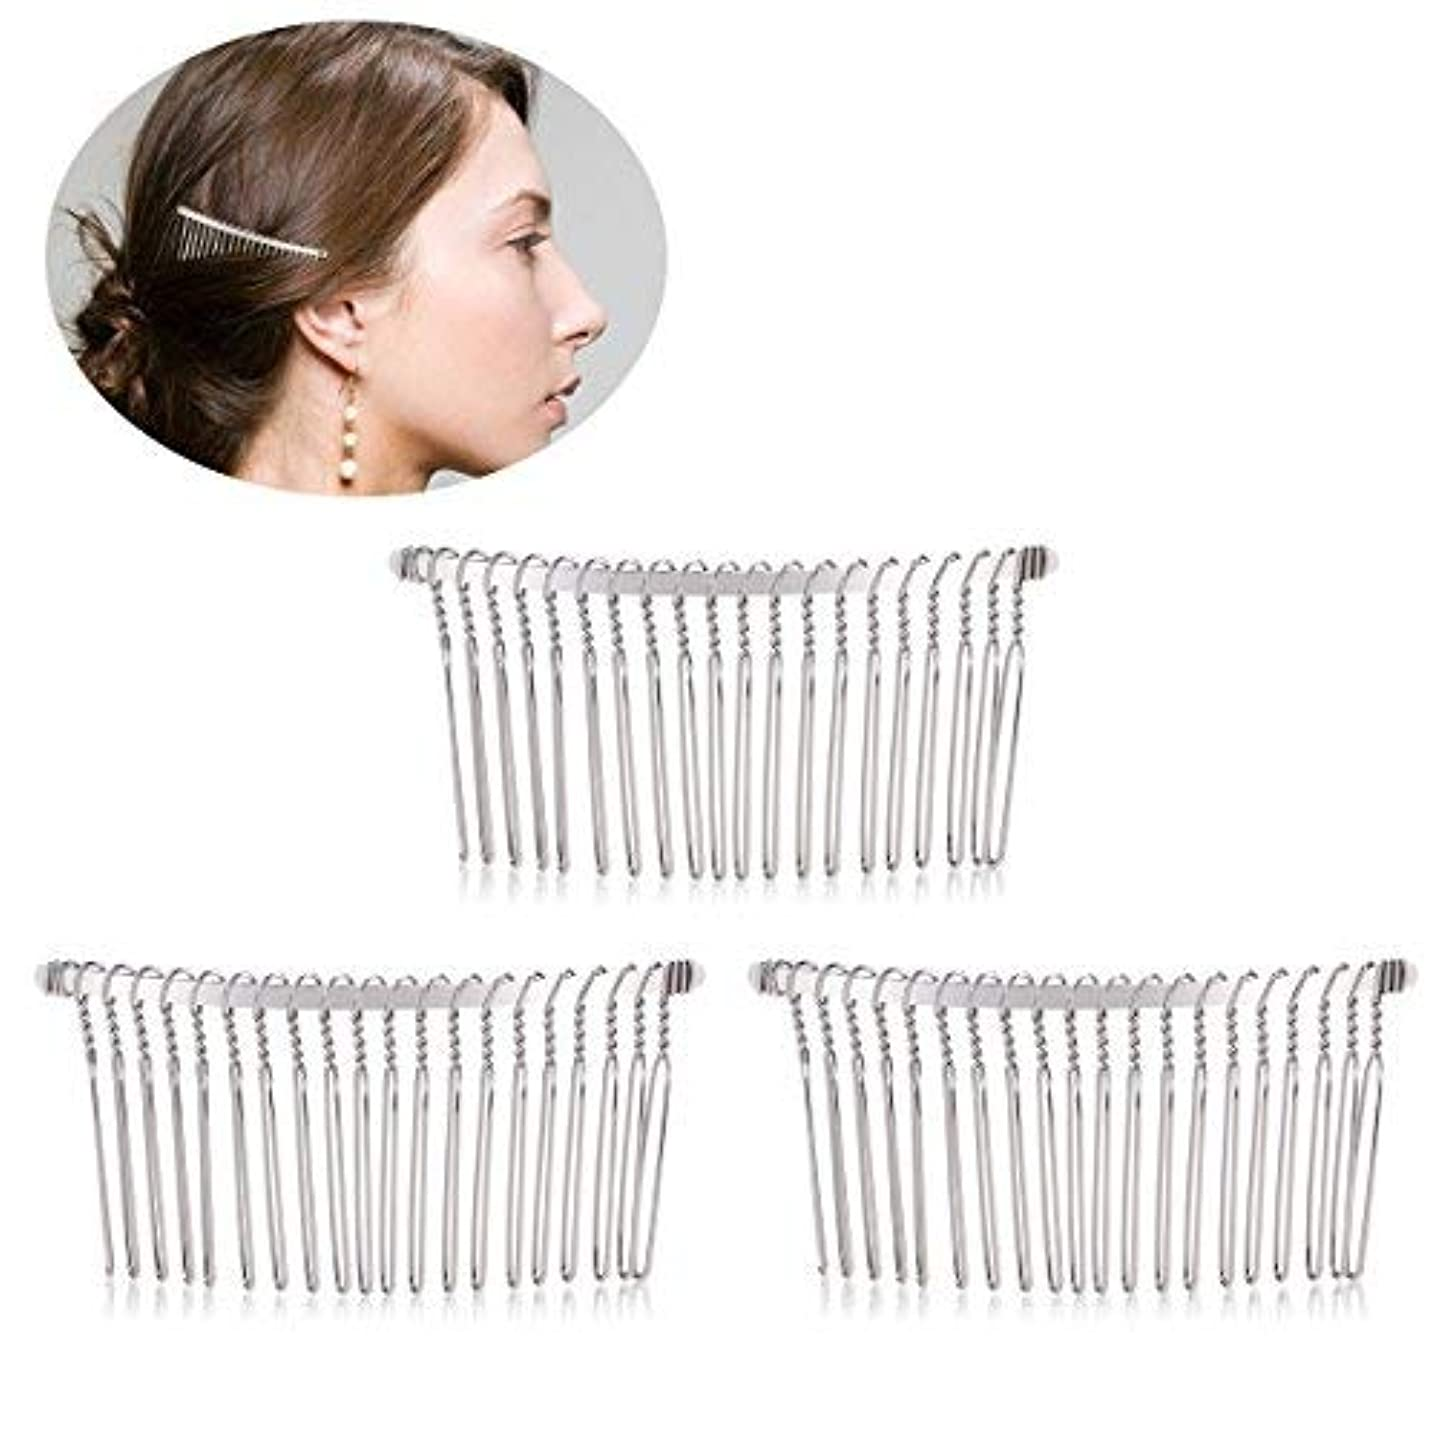 バイアス解任対応Pixnor 3pcs 7.8cm 20 Teeth Fancy DIY Metal Wire Hair Clip Combs Bridal Wedding Veil Combs (Silver) [並行輸入品]